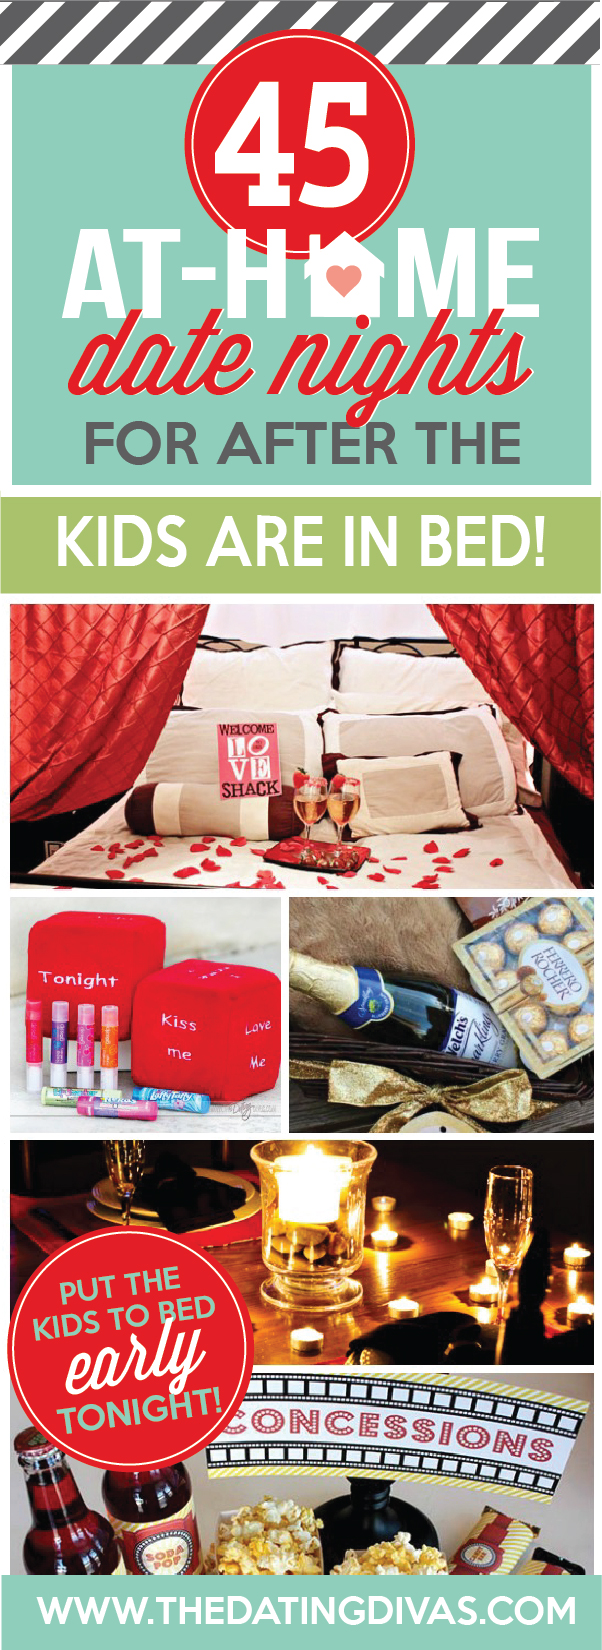 At Home Date Night Ideas For After The Kids Are In Bed